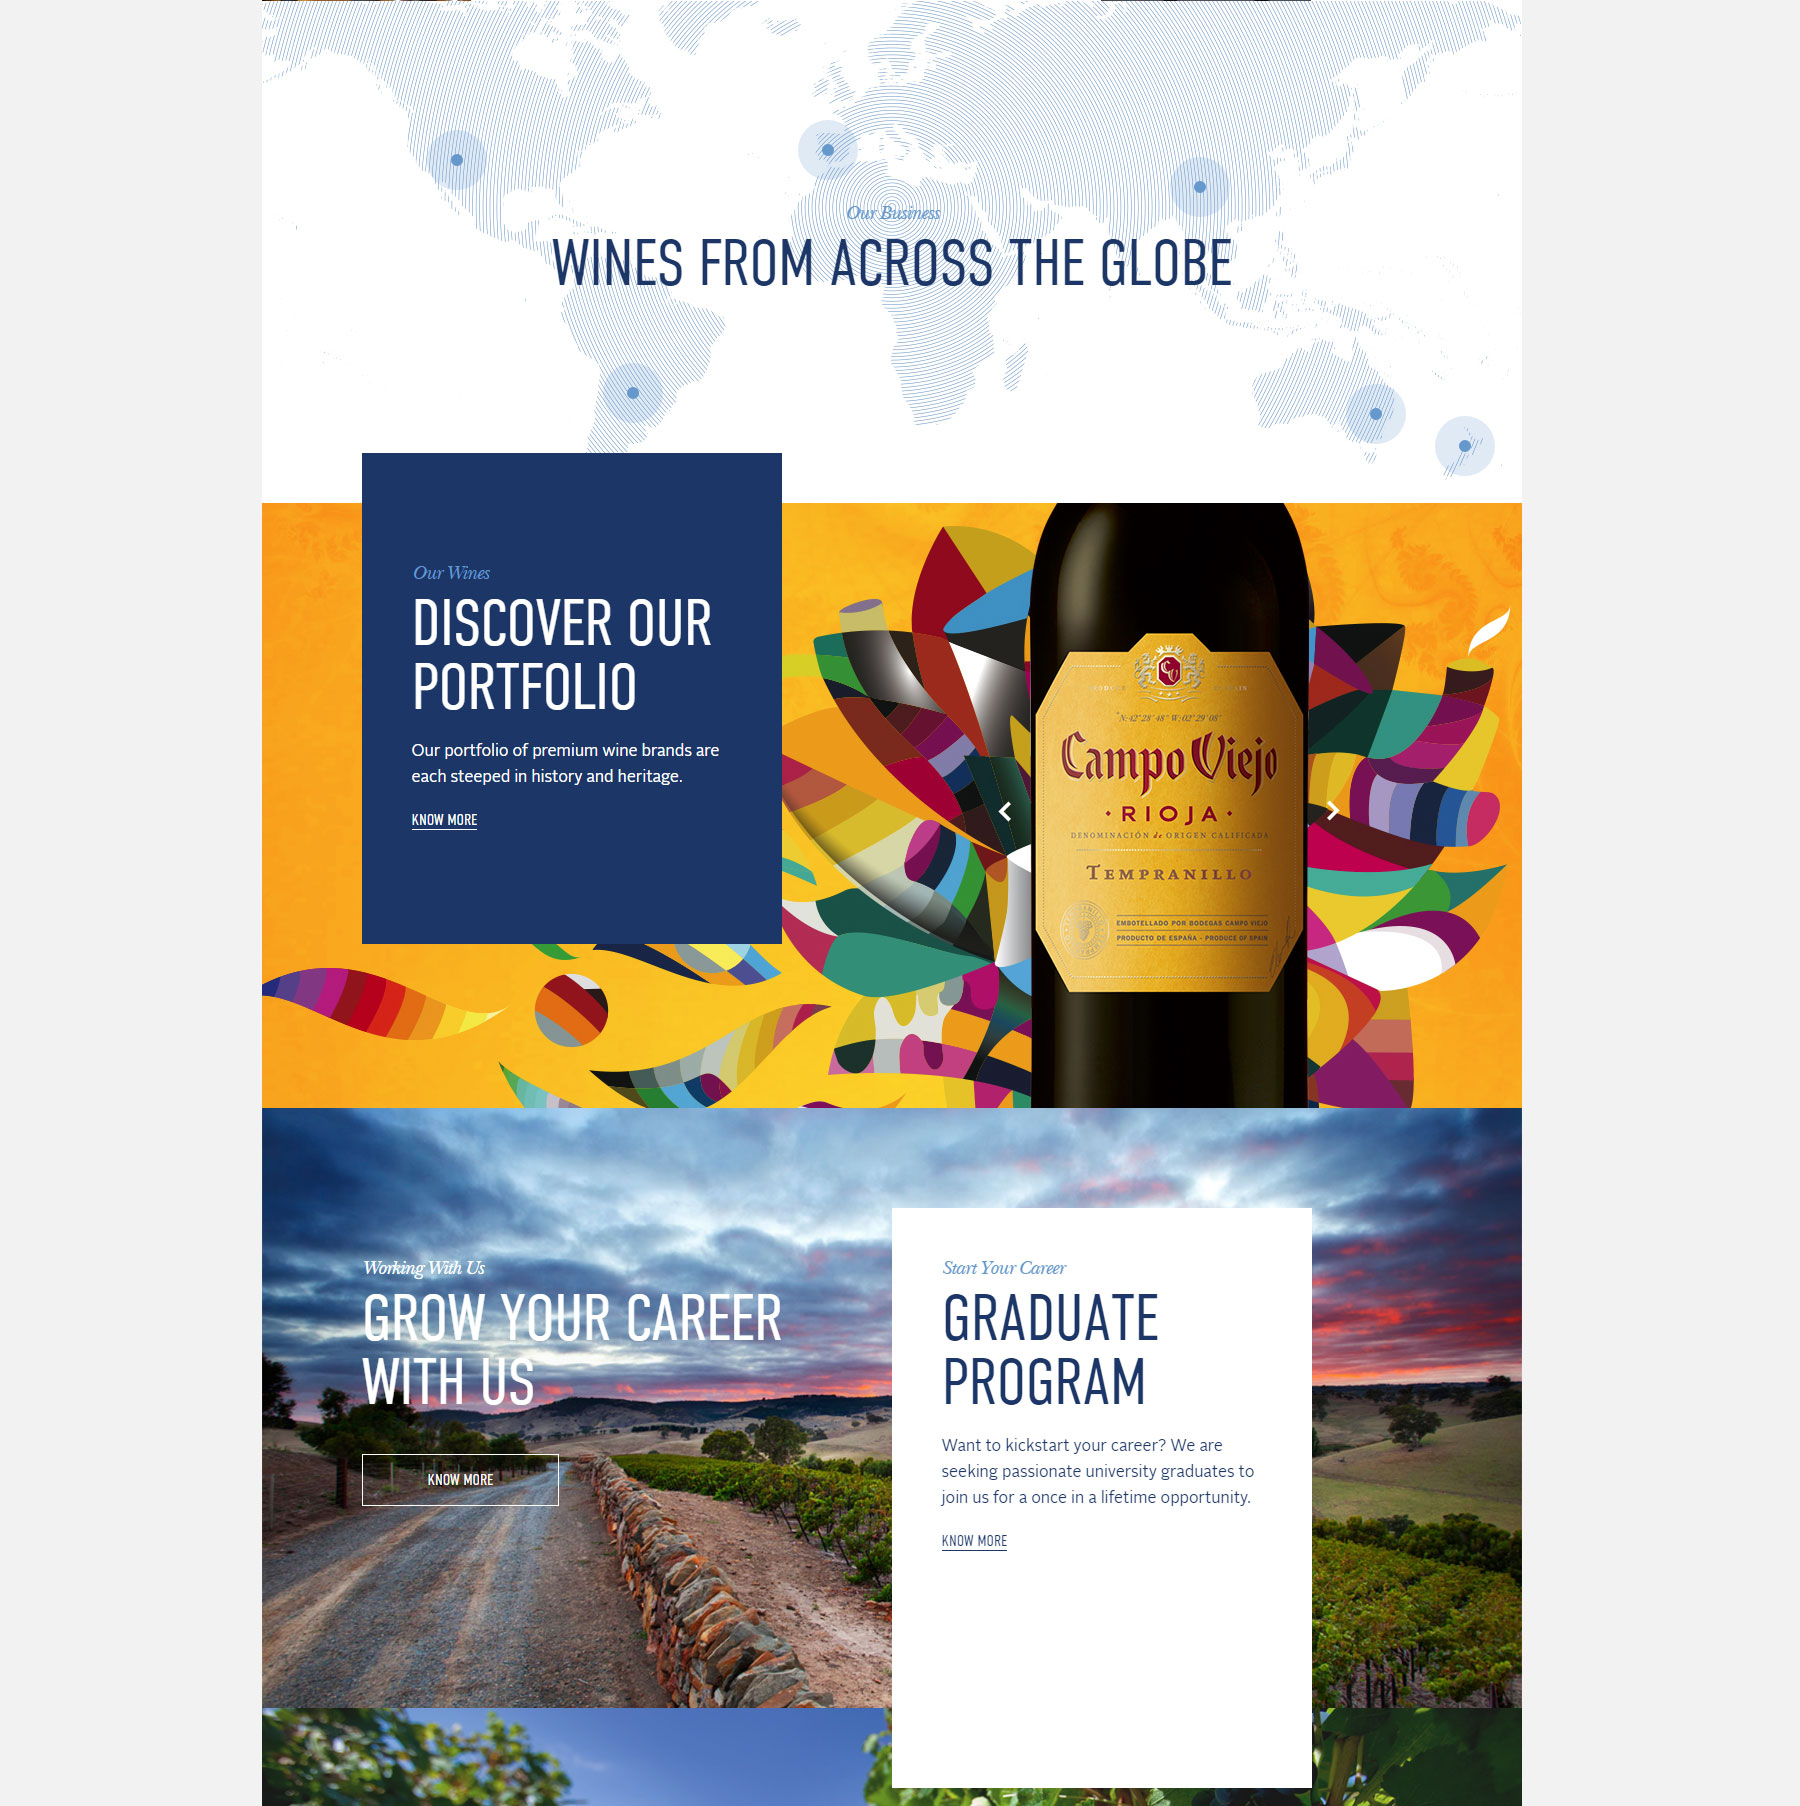 Pernod Ricard Winemakers - Website of the Day